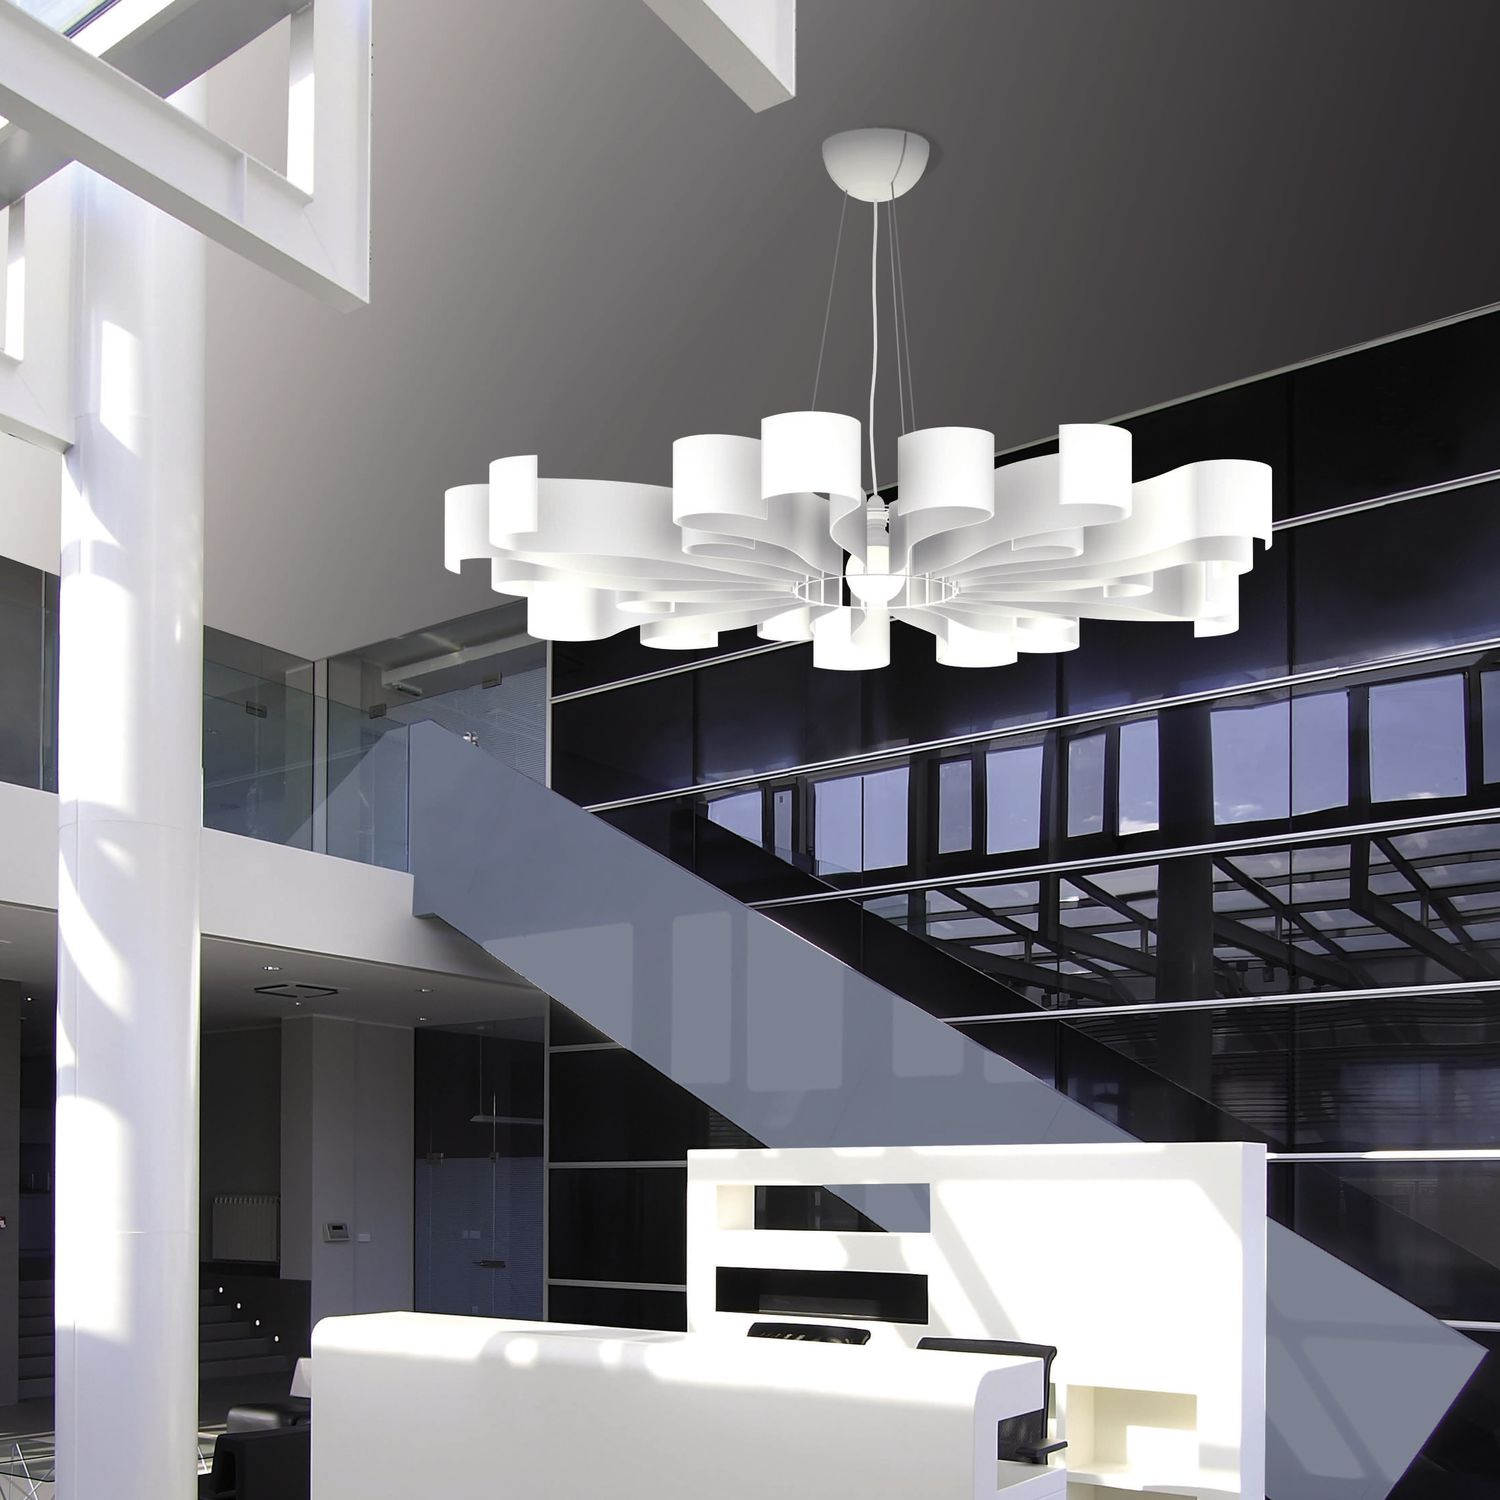 Lampadario moderno / in acciaio / led   soleil   22 22 edition design